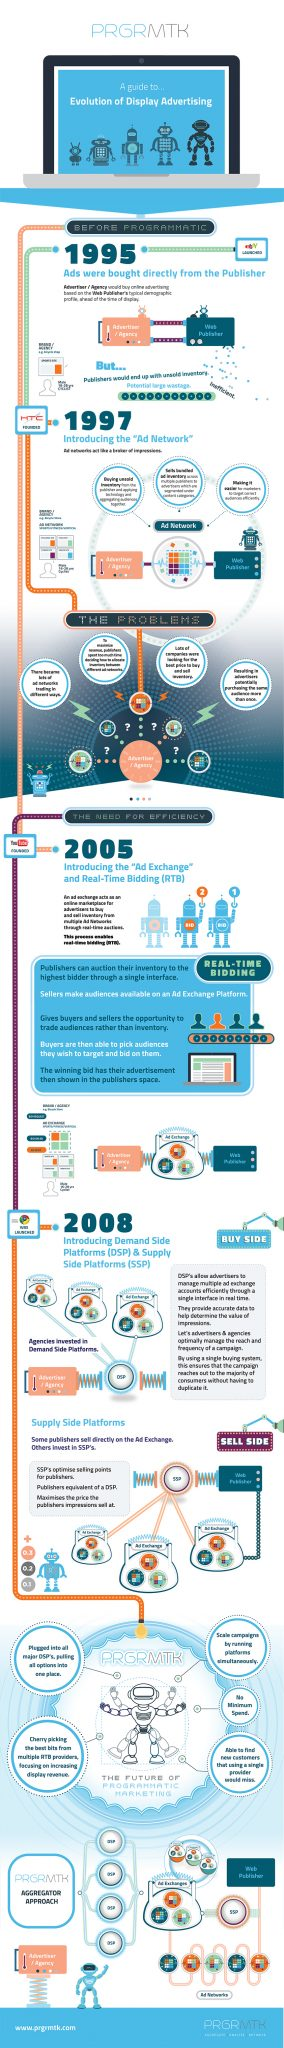 Display advertising 101 – the past, present and future - Infographic